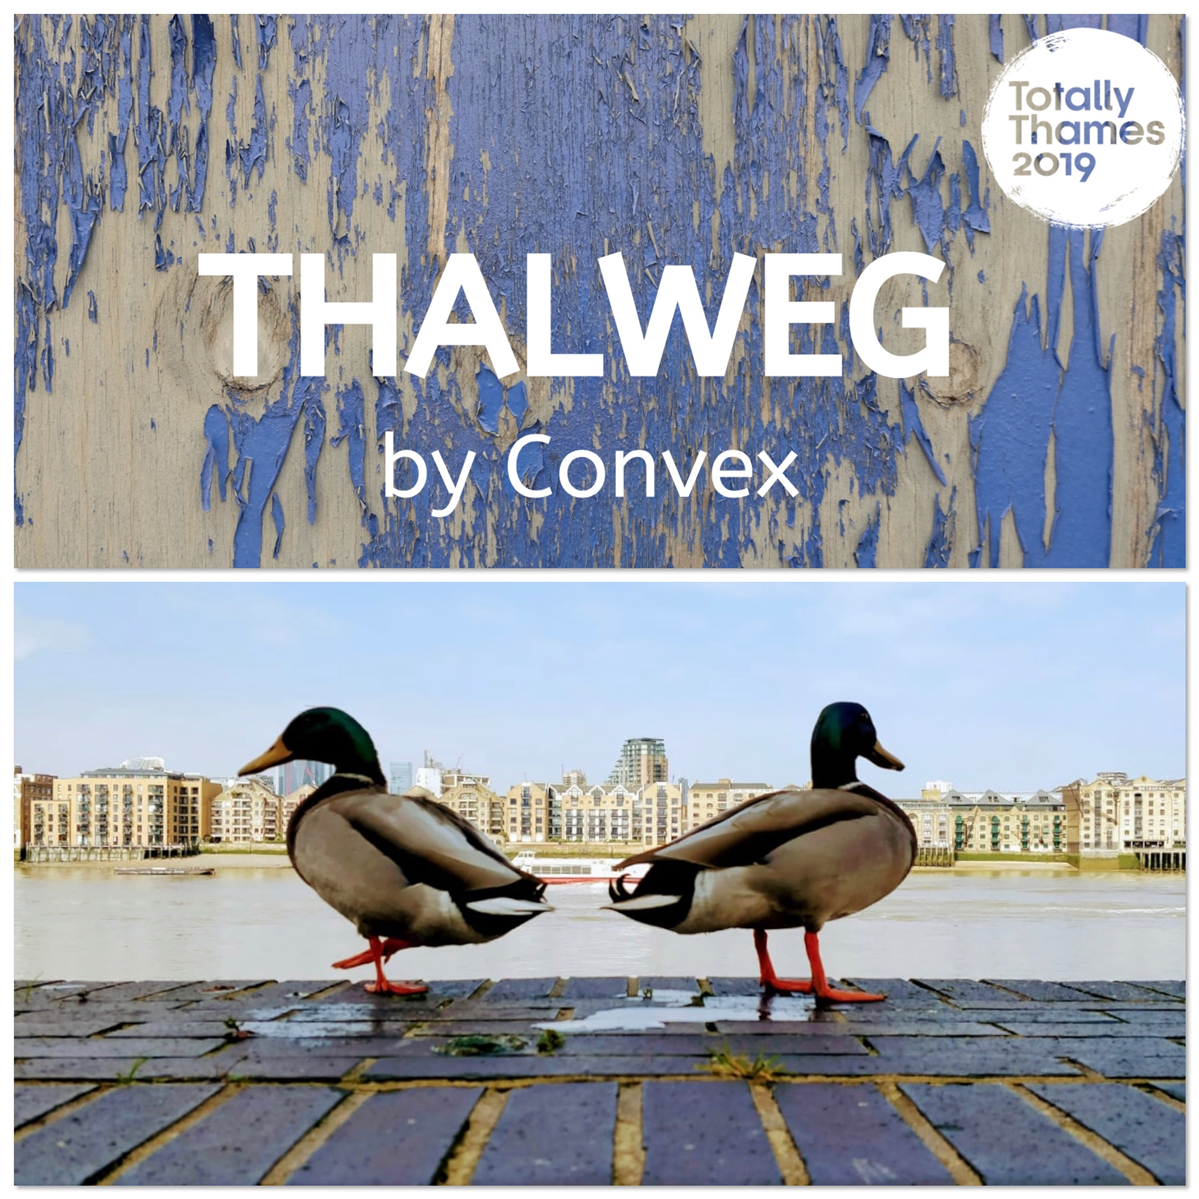 article thumb - Thalweg by Convex